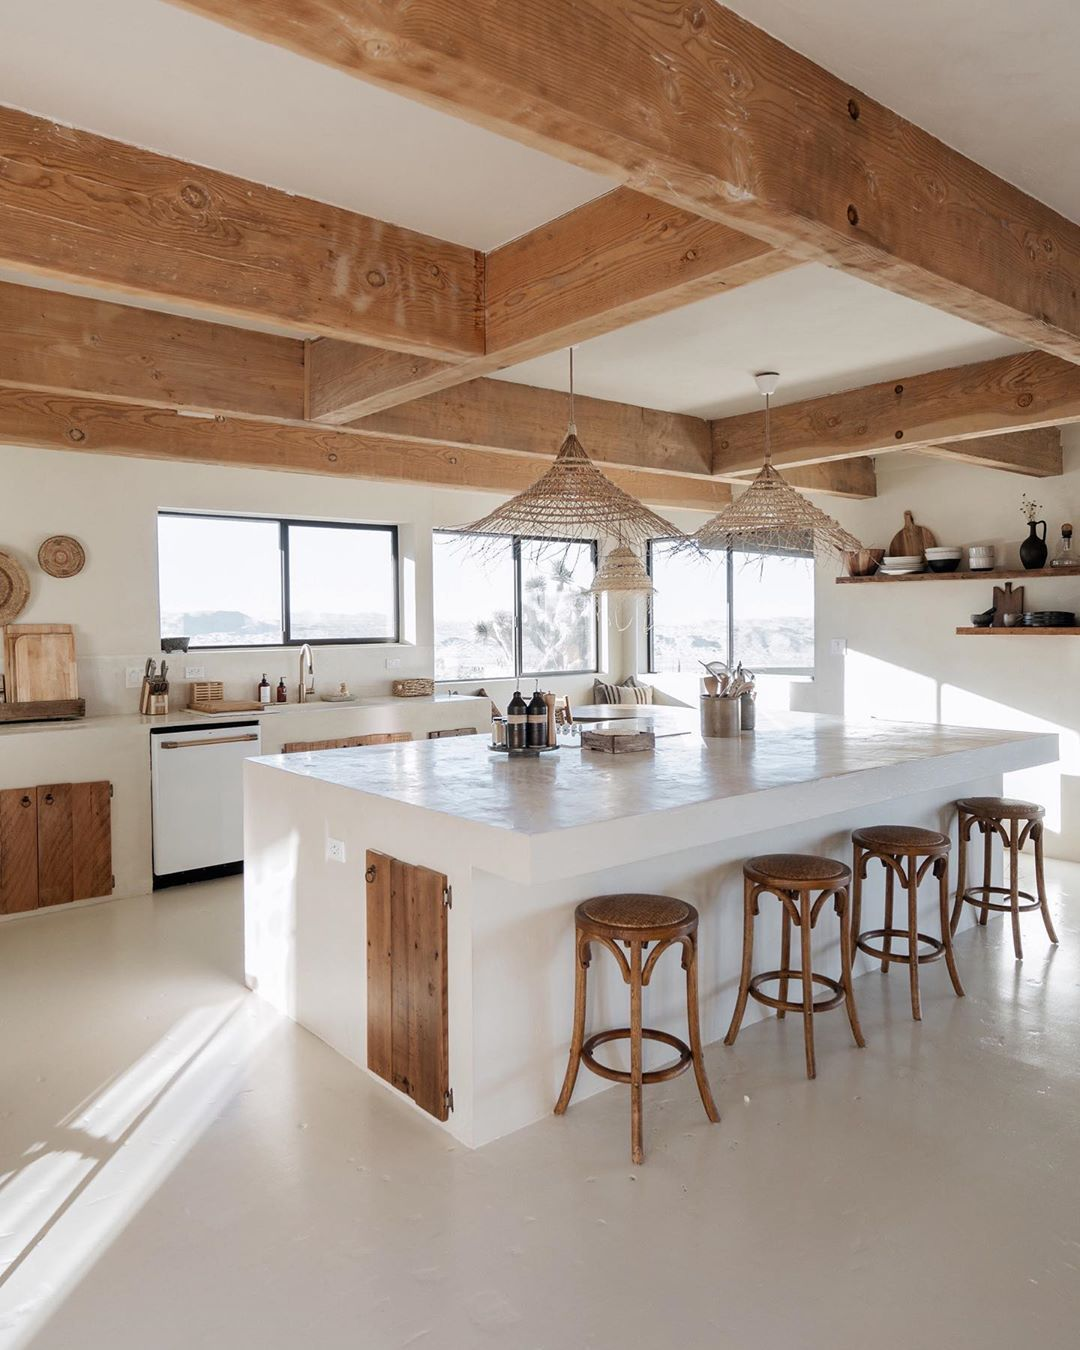 Beams Carley Desert Designed Exposed Hideaway Instagram Island Kitchen Kitchen Islands An In 2020 Spacious Kitchens Stools For Kitchen Island Bright Kitchens